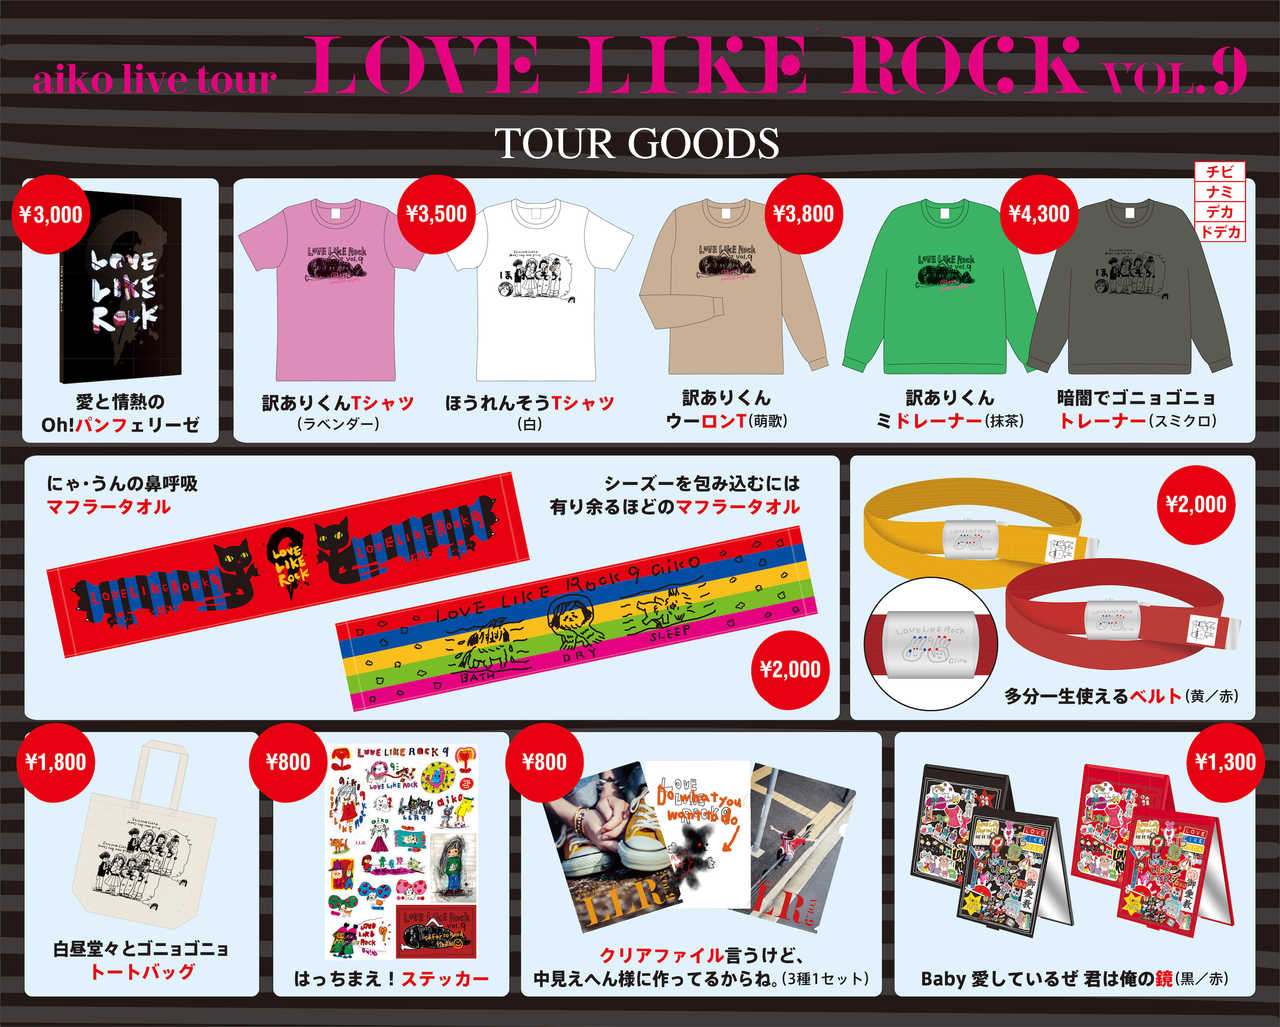 『Love Like Rock vol.9』グッズ